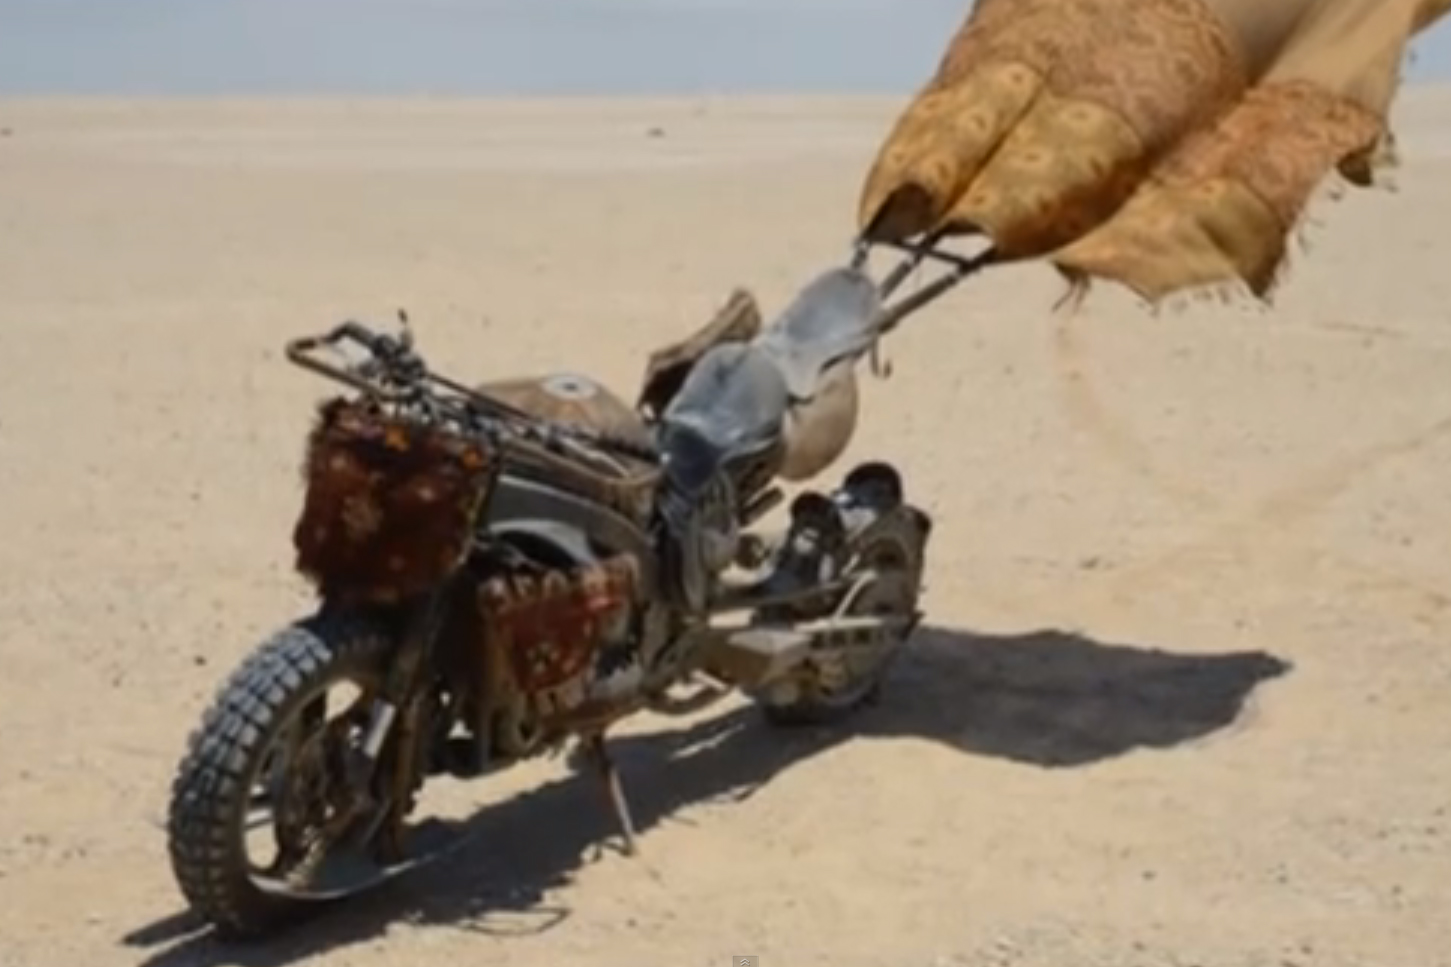 The bikes of Mad Max